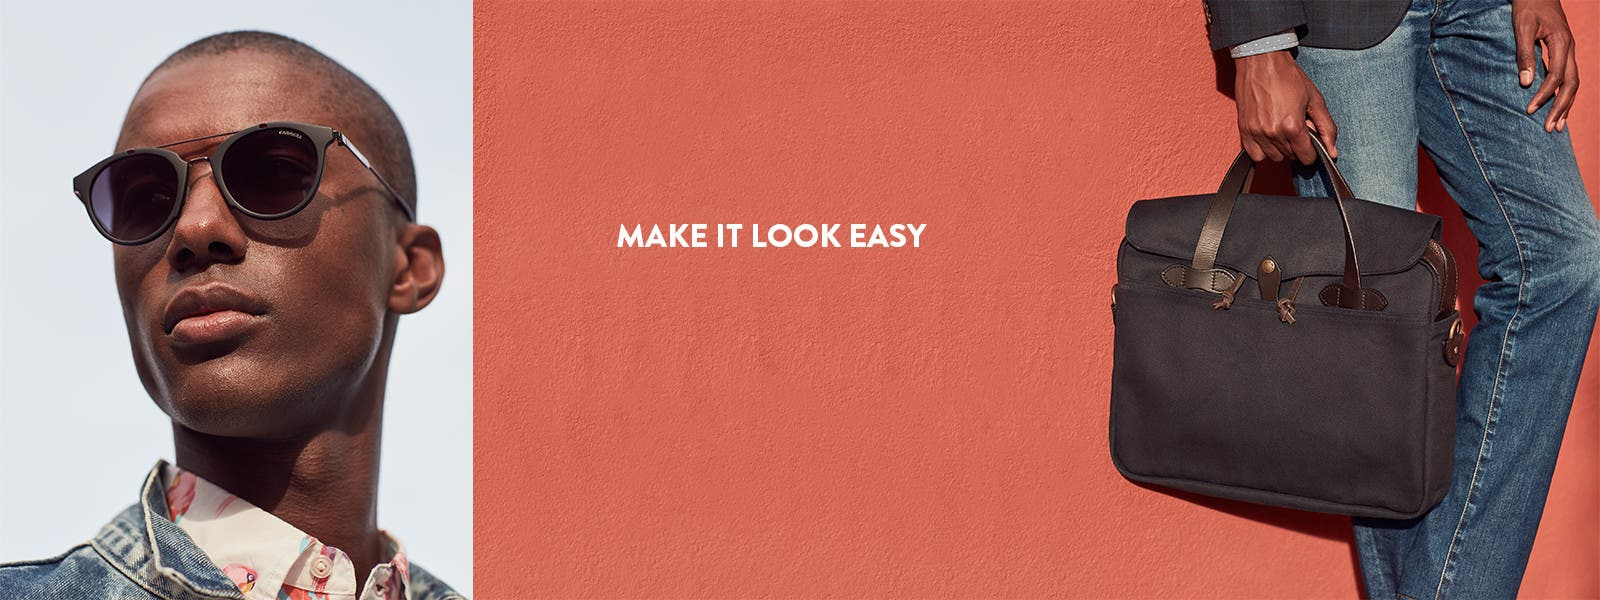 Make it look easy.